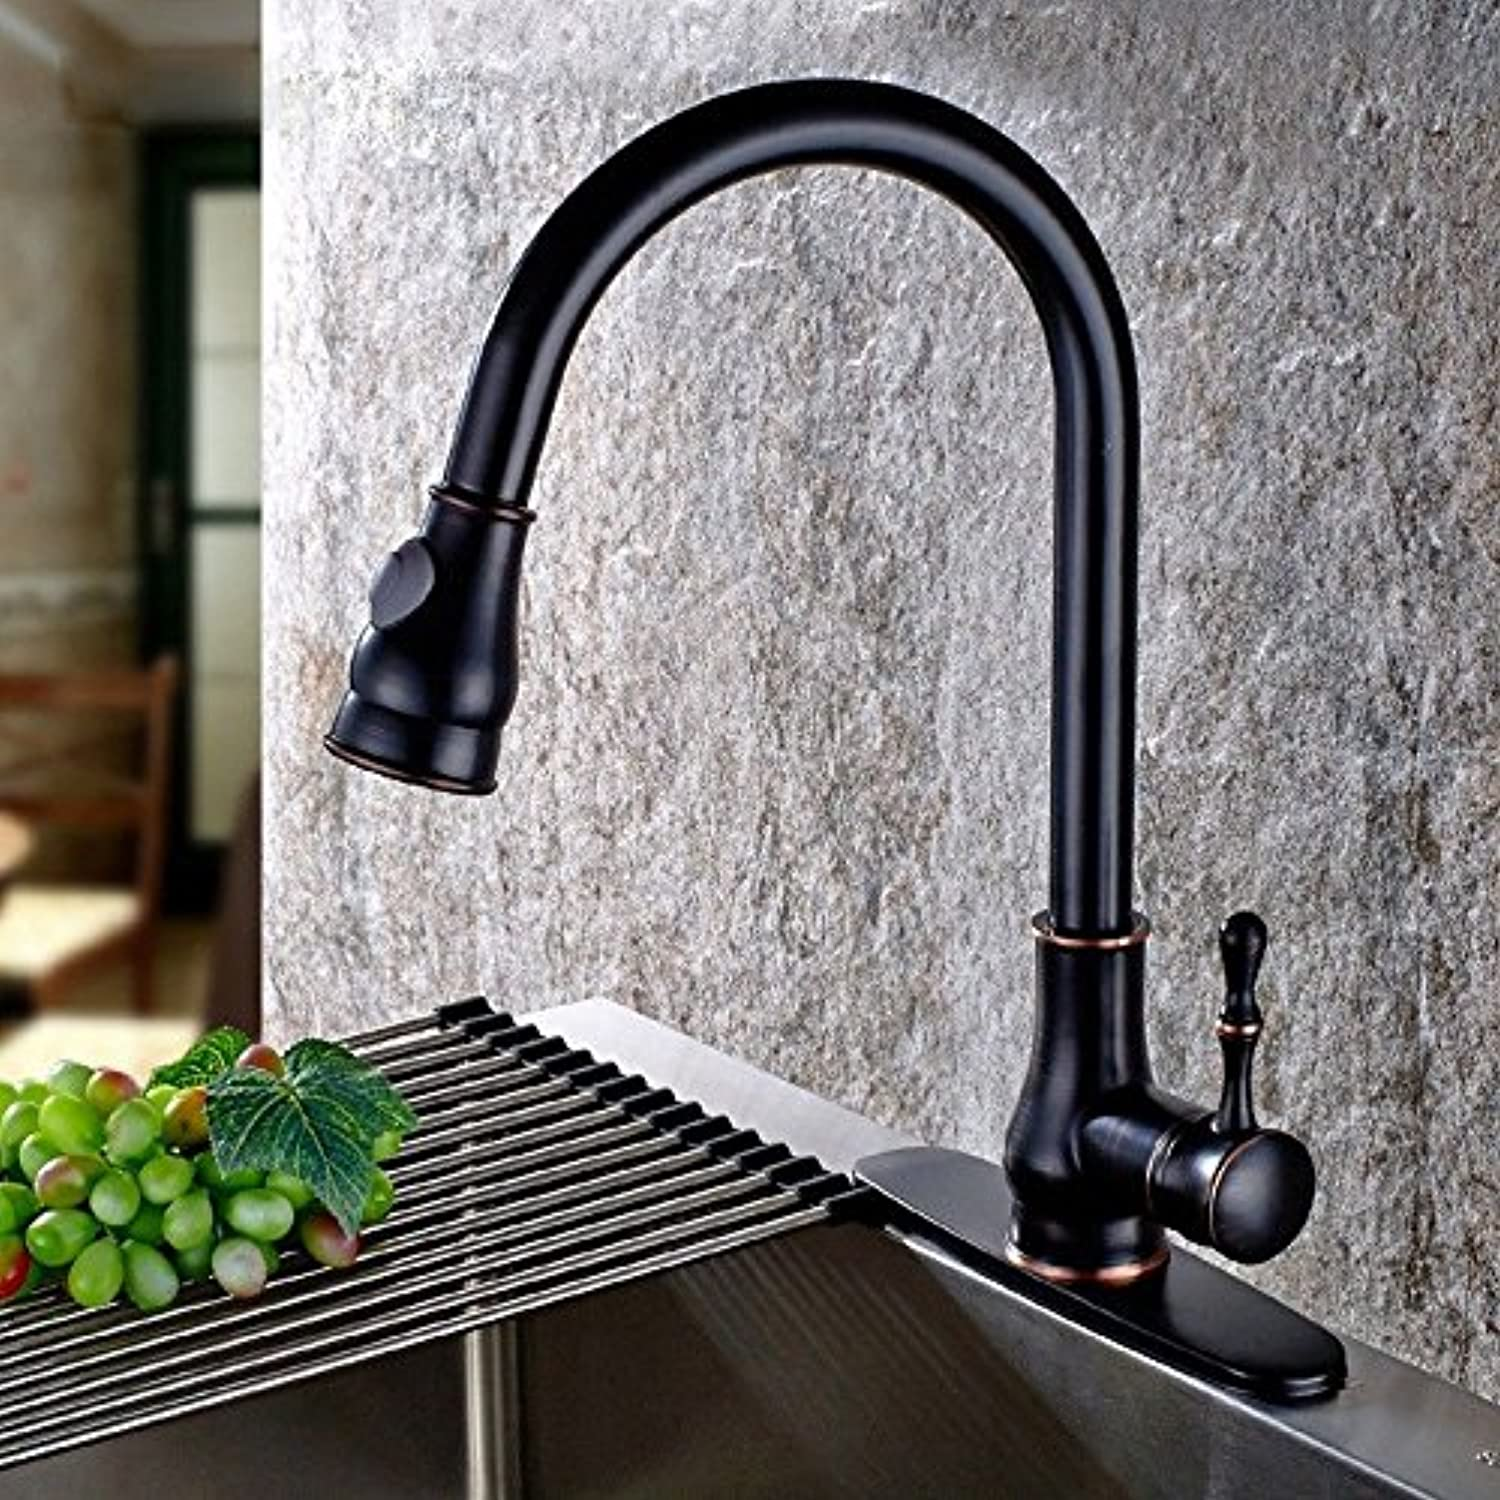 Commercial Single Lever Pull Down Kitchen Sink Faucet Brass Constructed Polished Faucet???Kitchen Full Copper Antique Stretch Hot and Cold Sink redating Faucet Sink Faucet